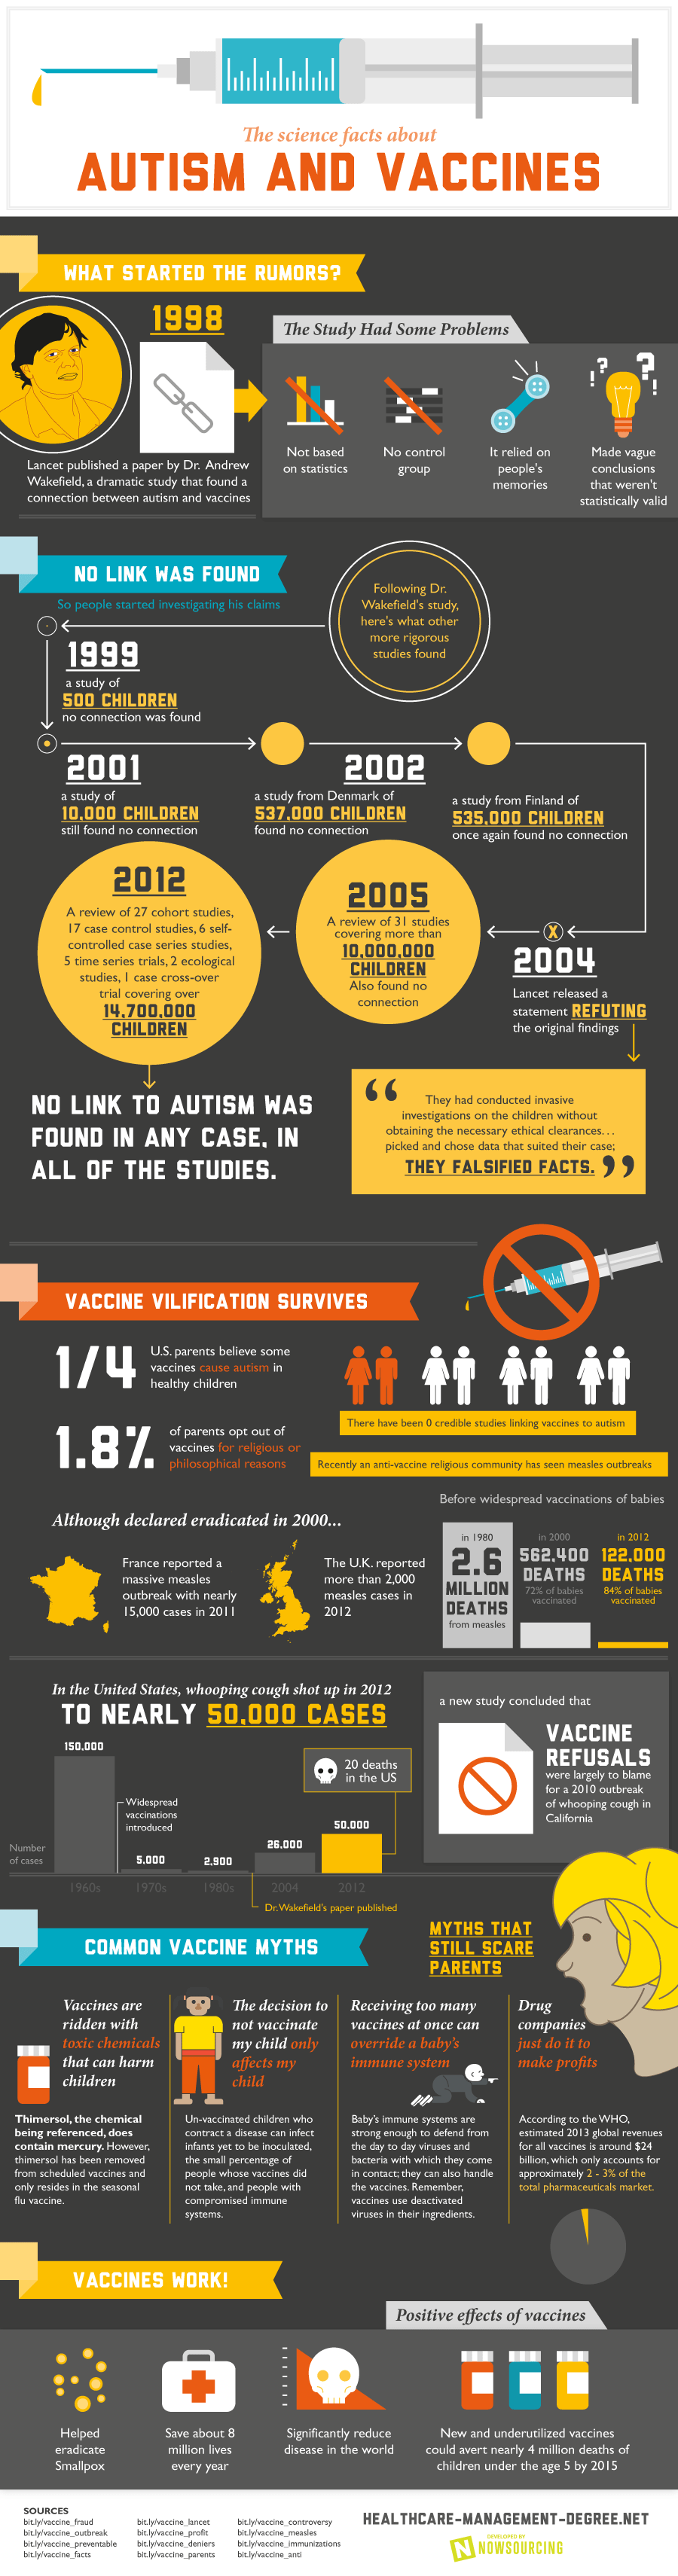 Vaccines and Autism: Why you should vaccinate your kids!